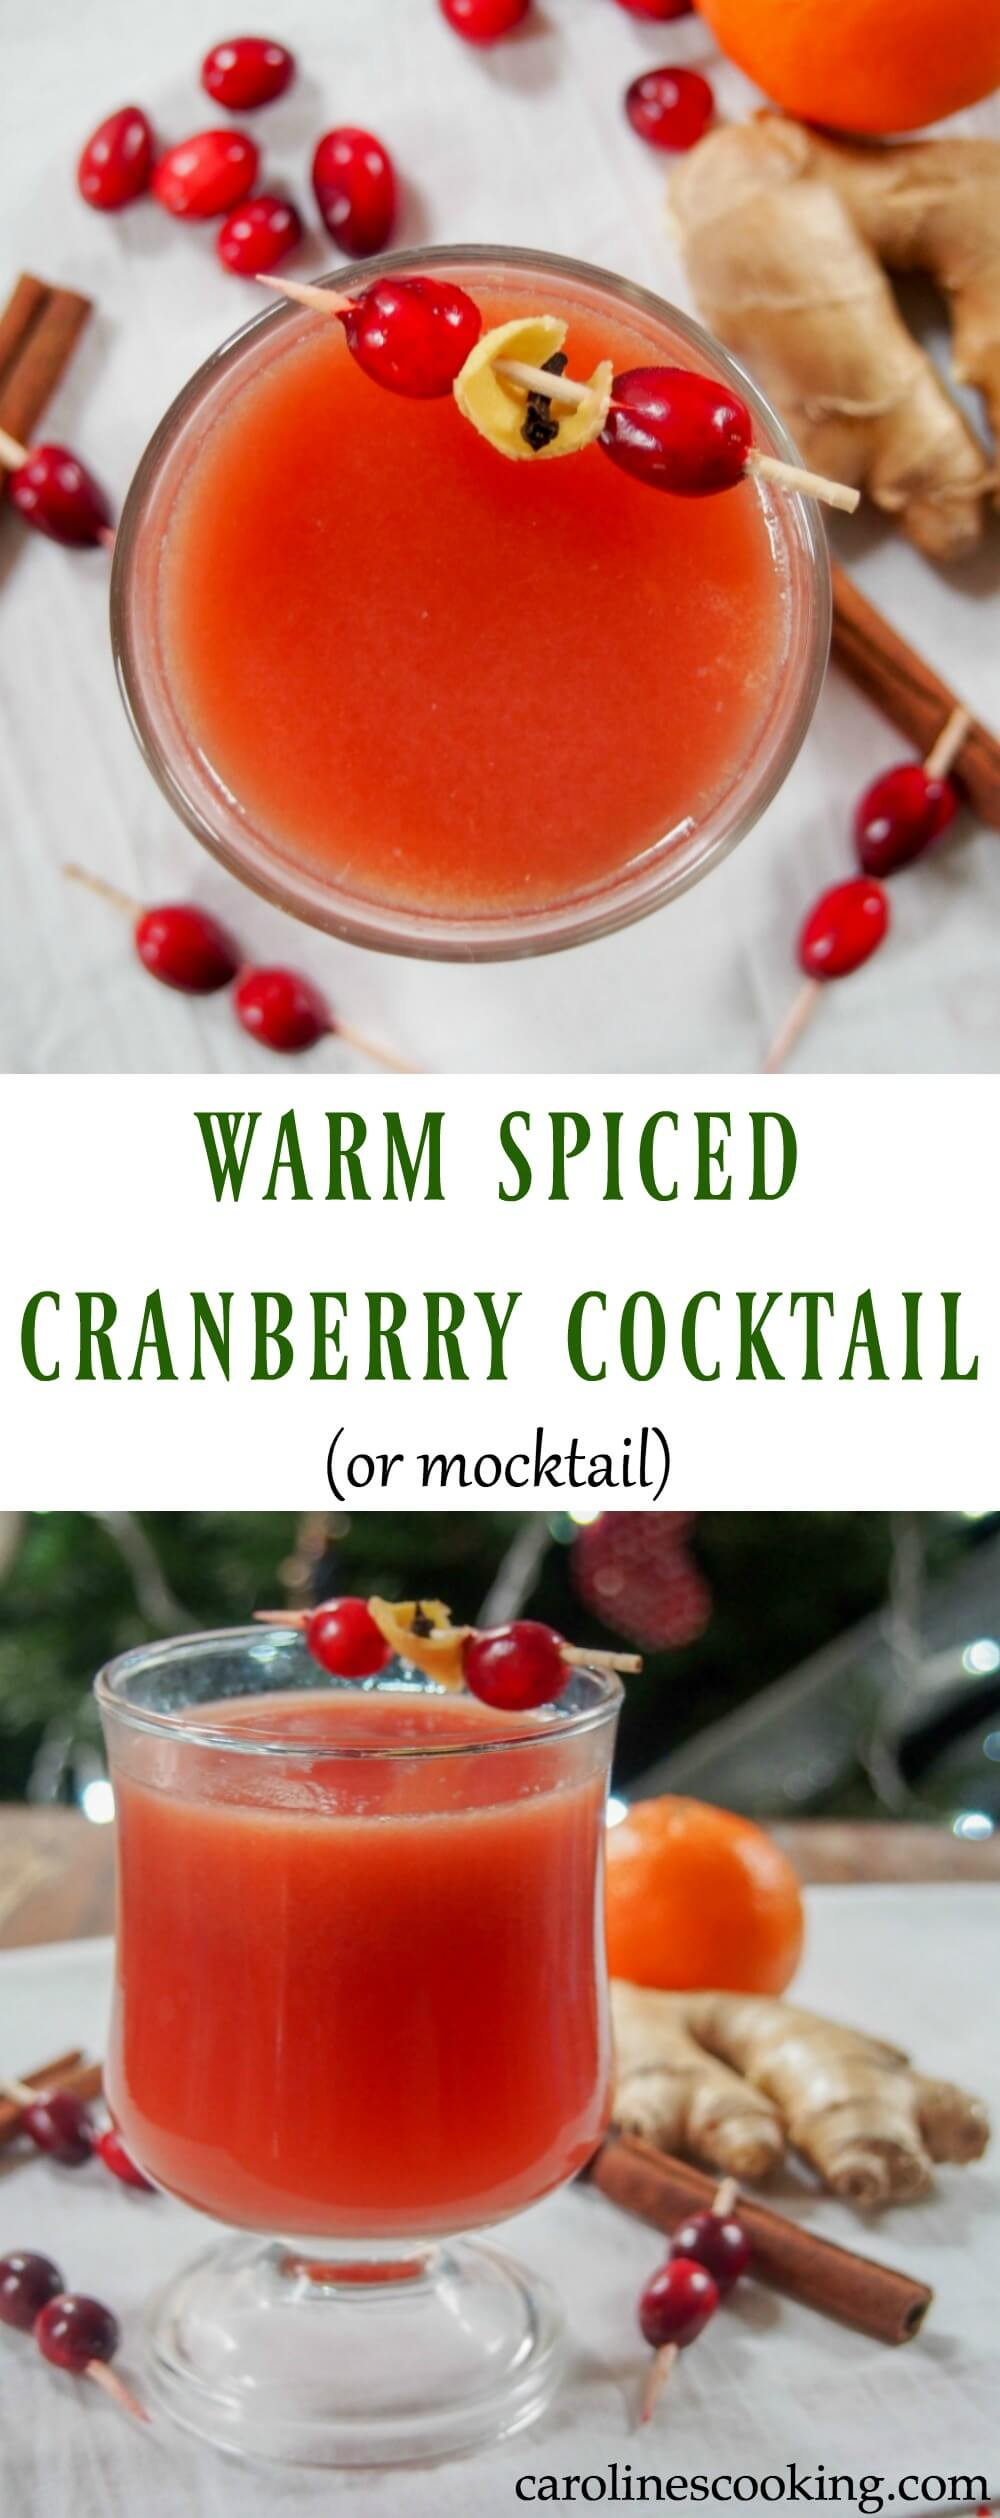 This warm spiced cranberry cocktail is easy to make but so tasty, with or without alcohol. A perfect way to get in the festive spirit and warm you through. #cocktail #cranberry